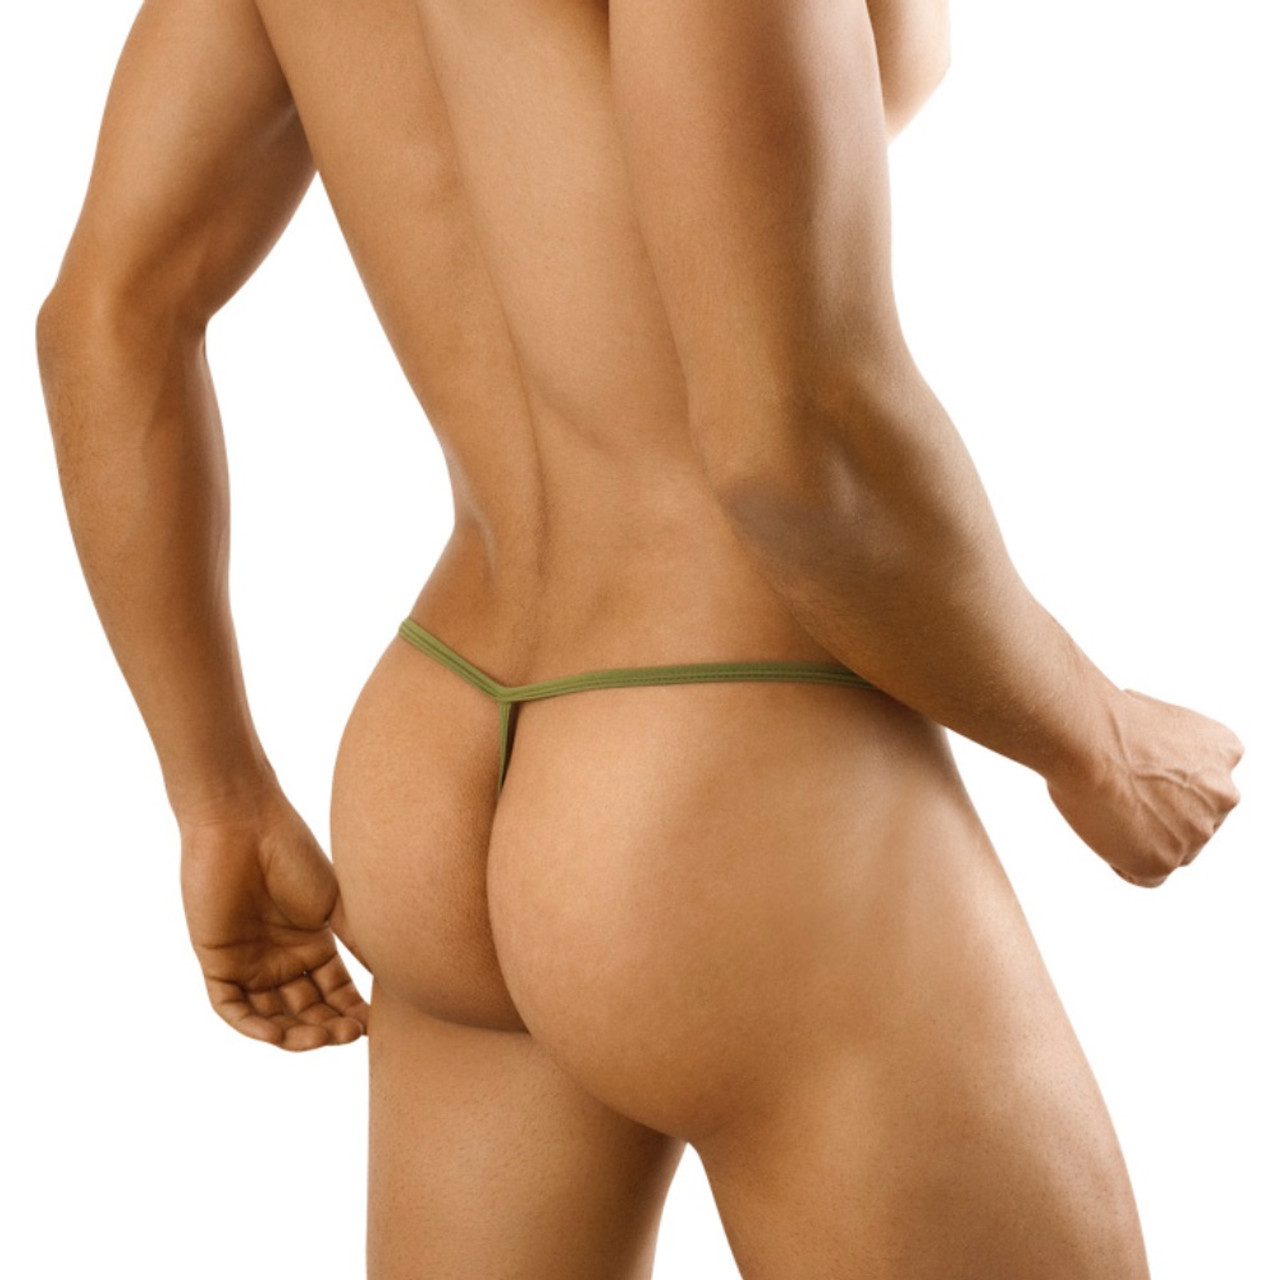 Candyman Mens G-string Thong - Sexy male thong underwear